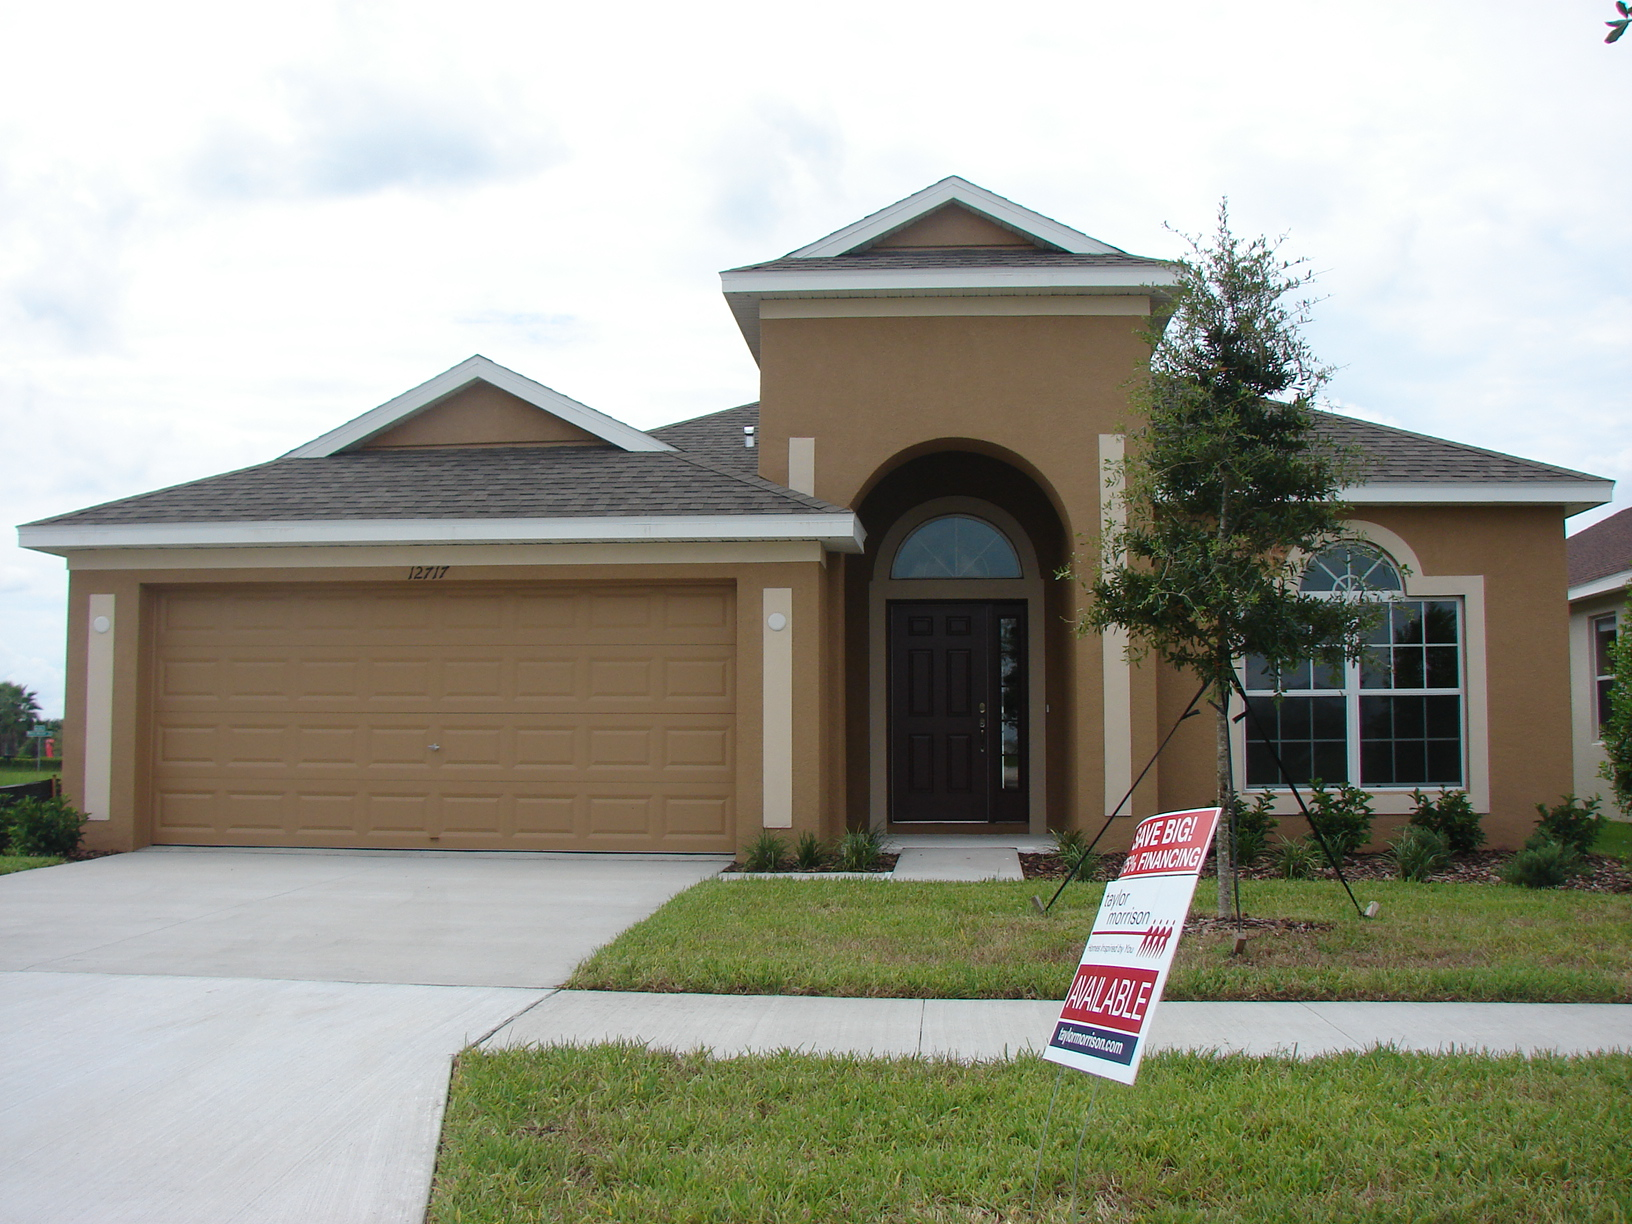 riverview fl real estate new homes for sale